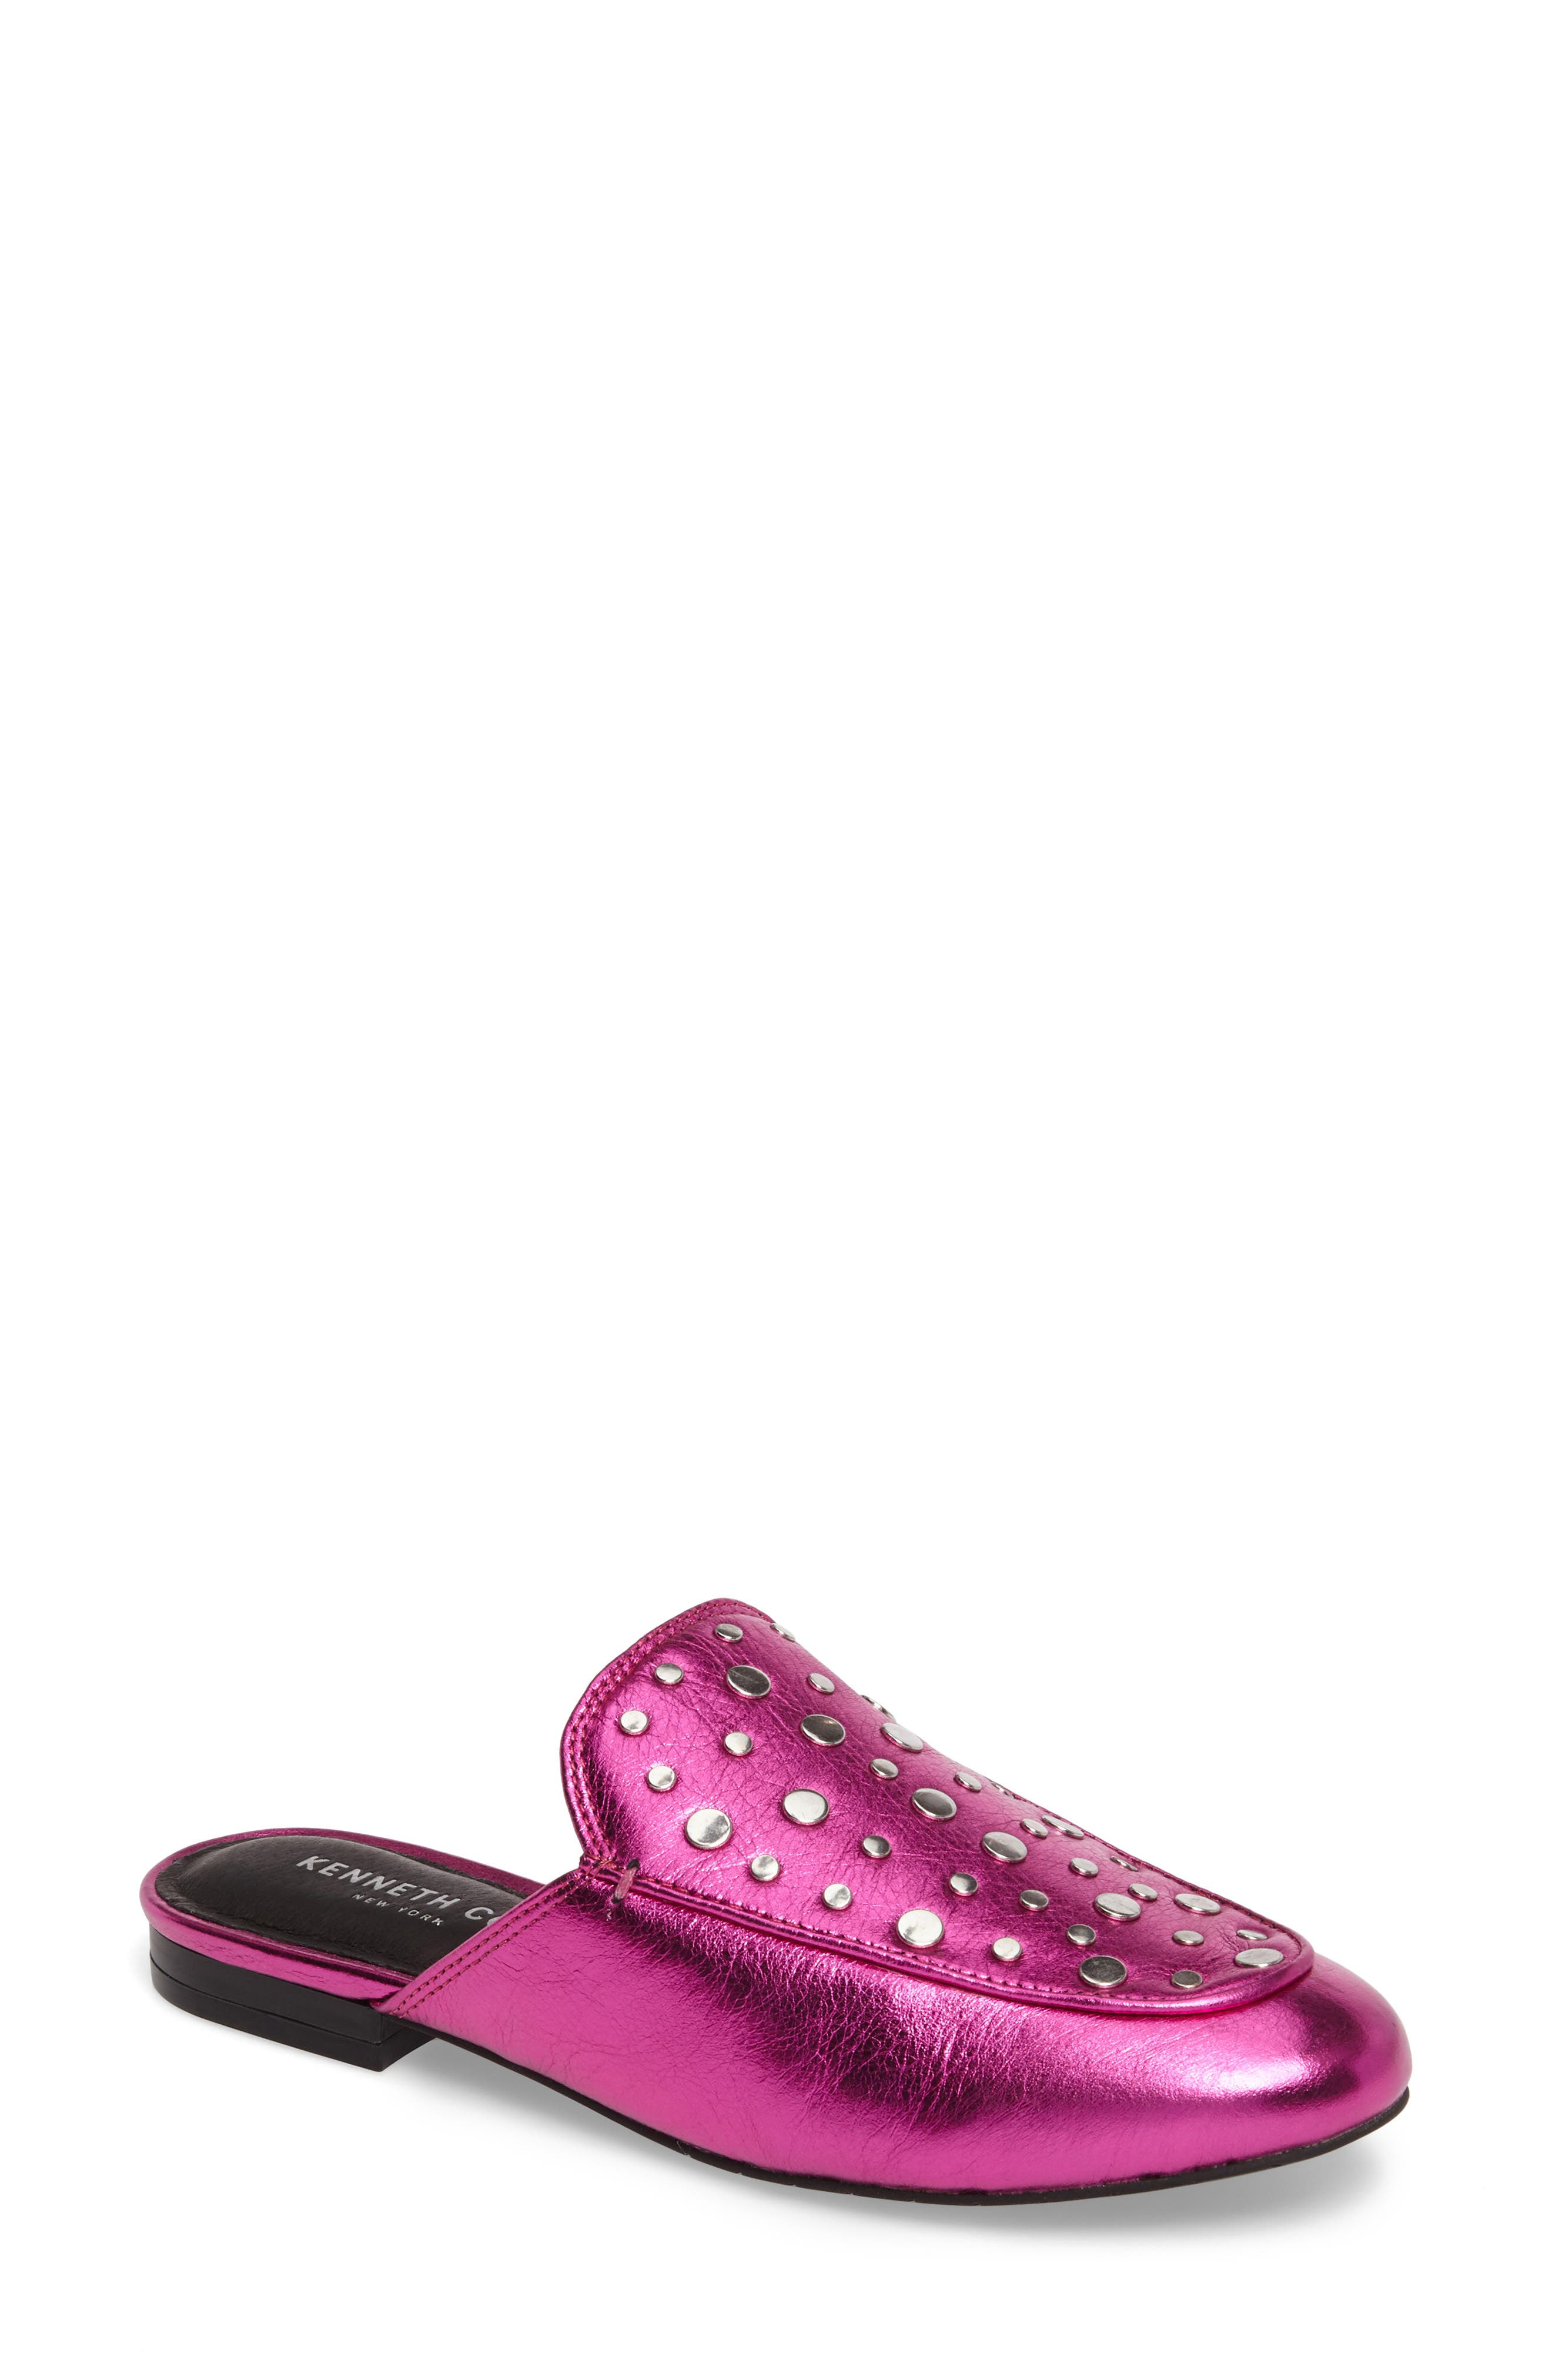 Wynter Studded Loafer,                         Main,                         color, 551